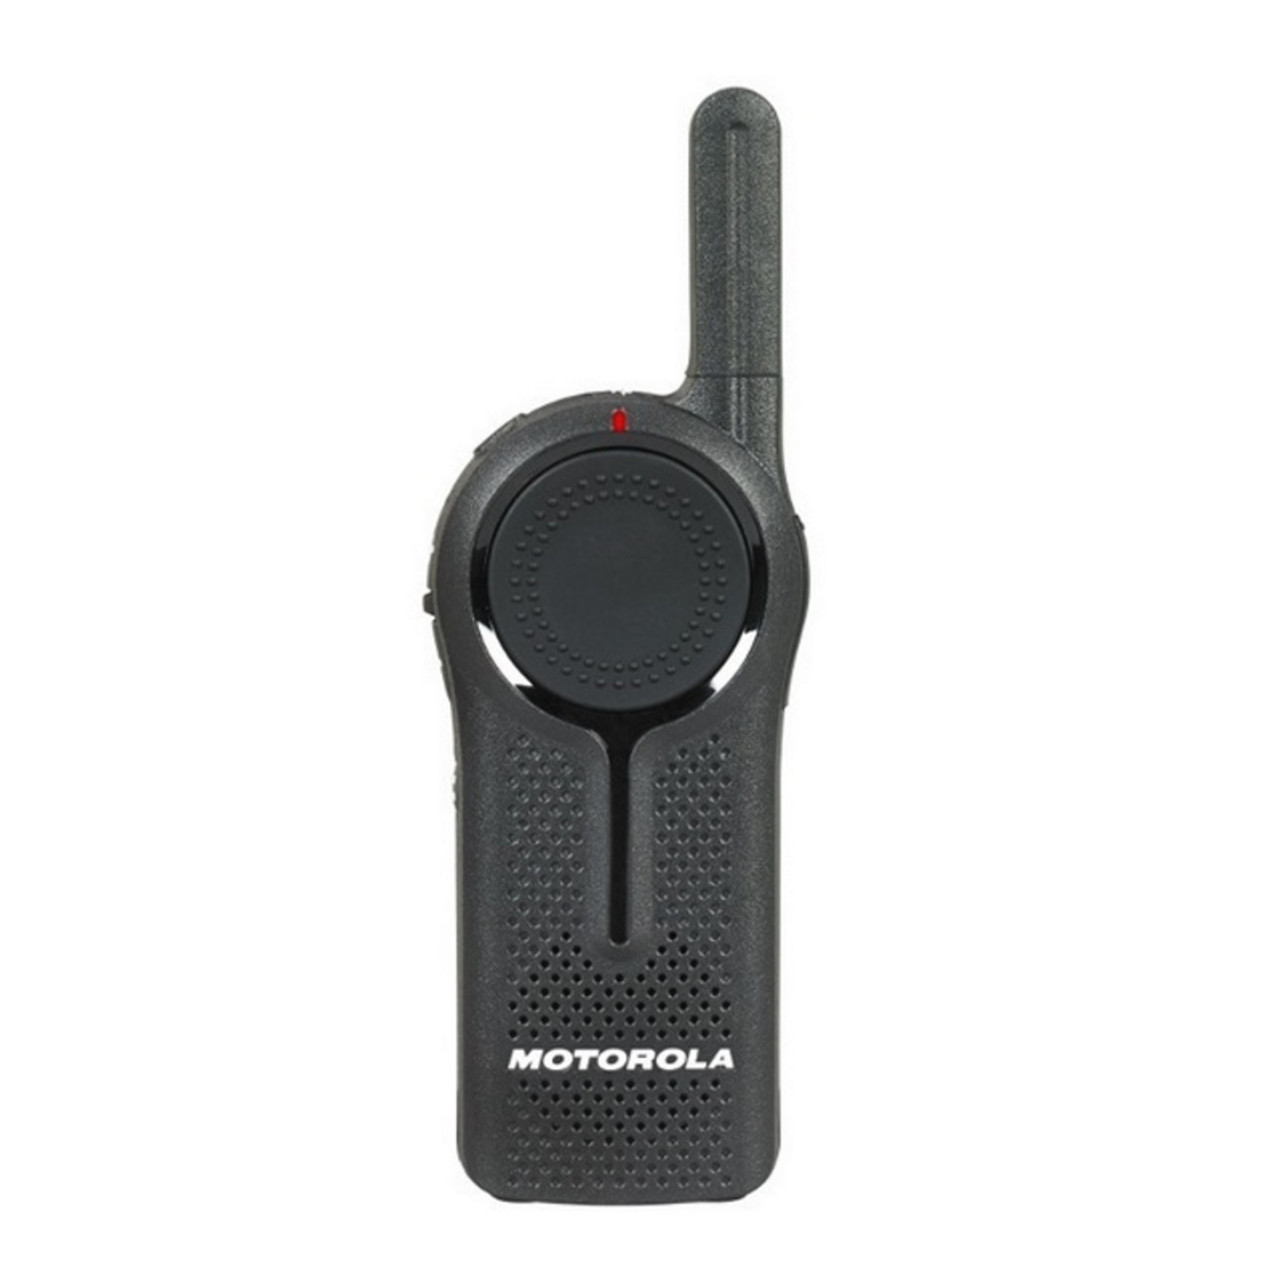 The Motorola DLR Series Radios Operate At 900 MHz And Are Powerful 1 Watt